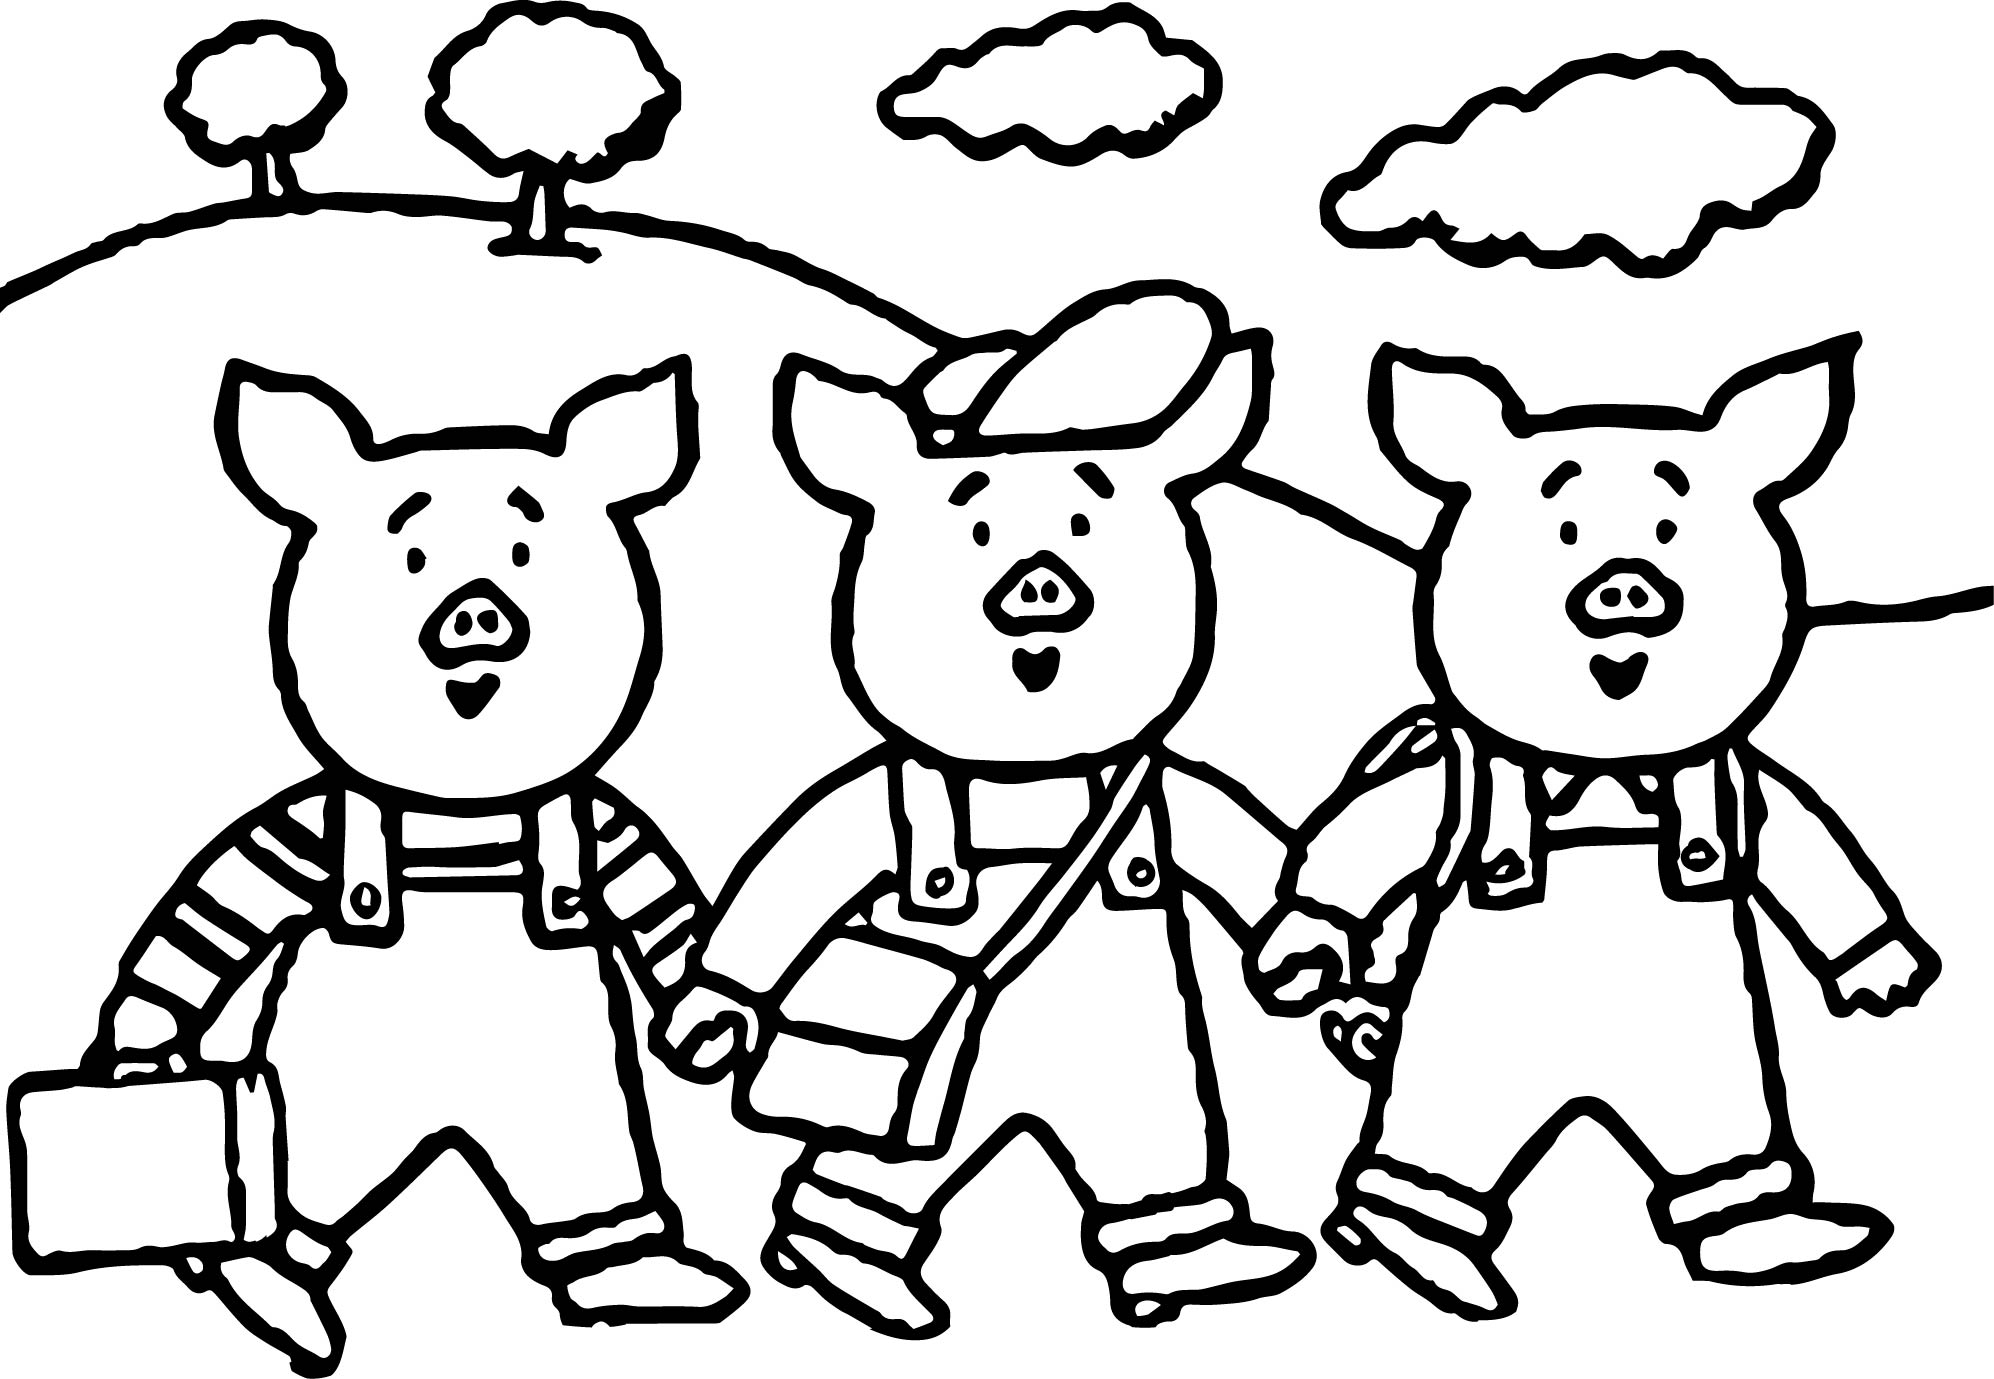 Coloring pages 3 little pigs - 3 Little Pigs School Coloring Page